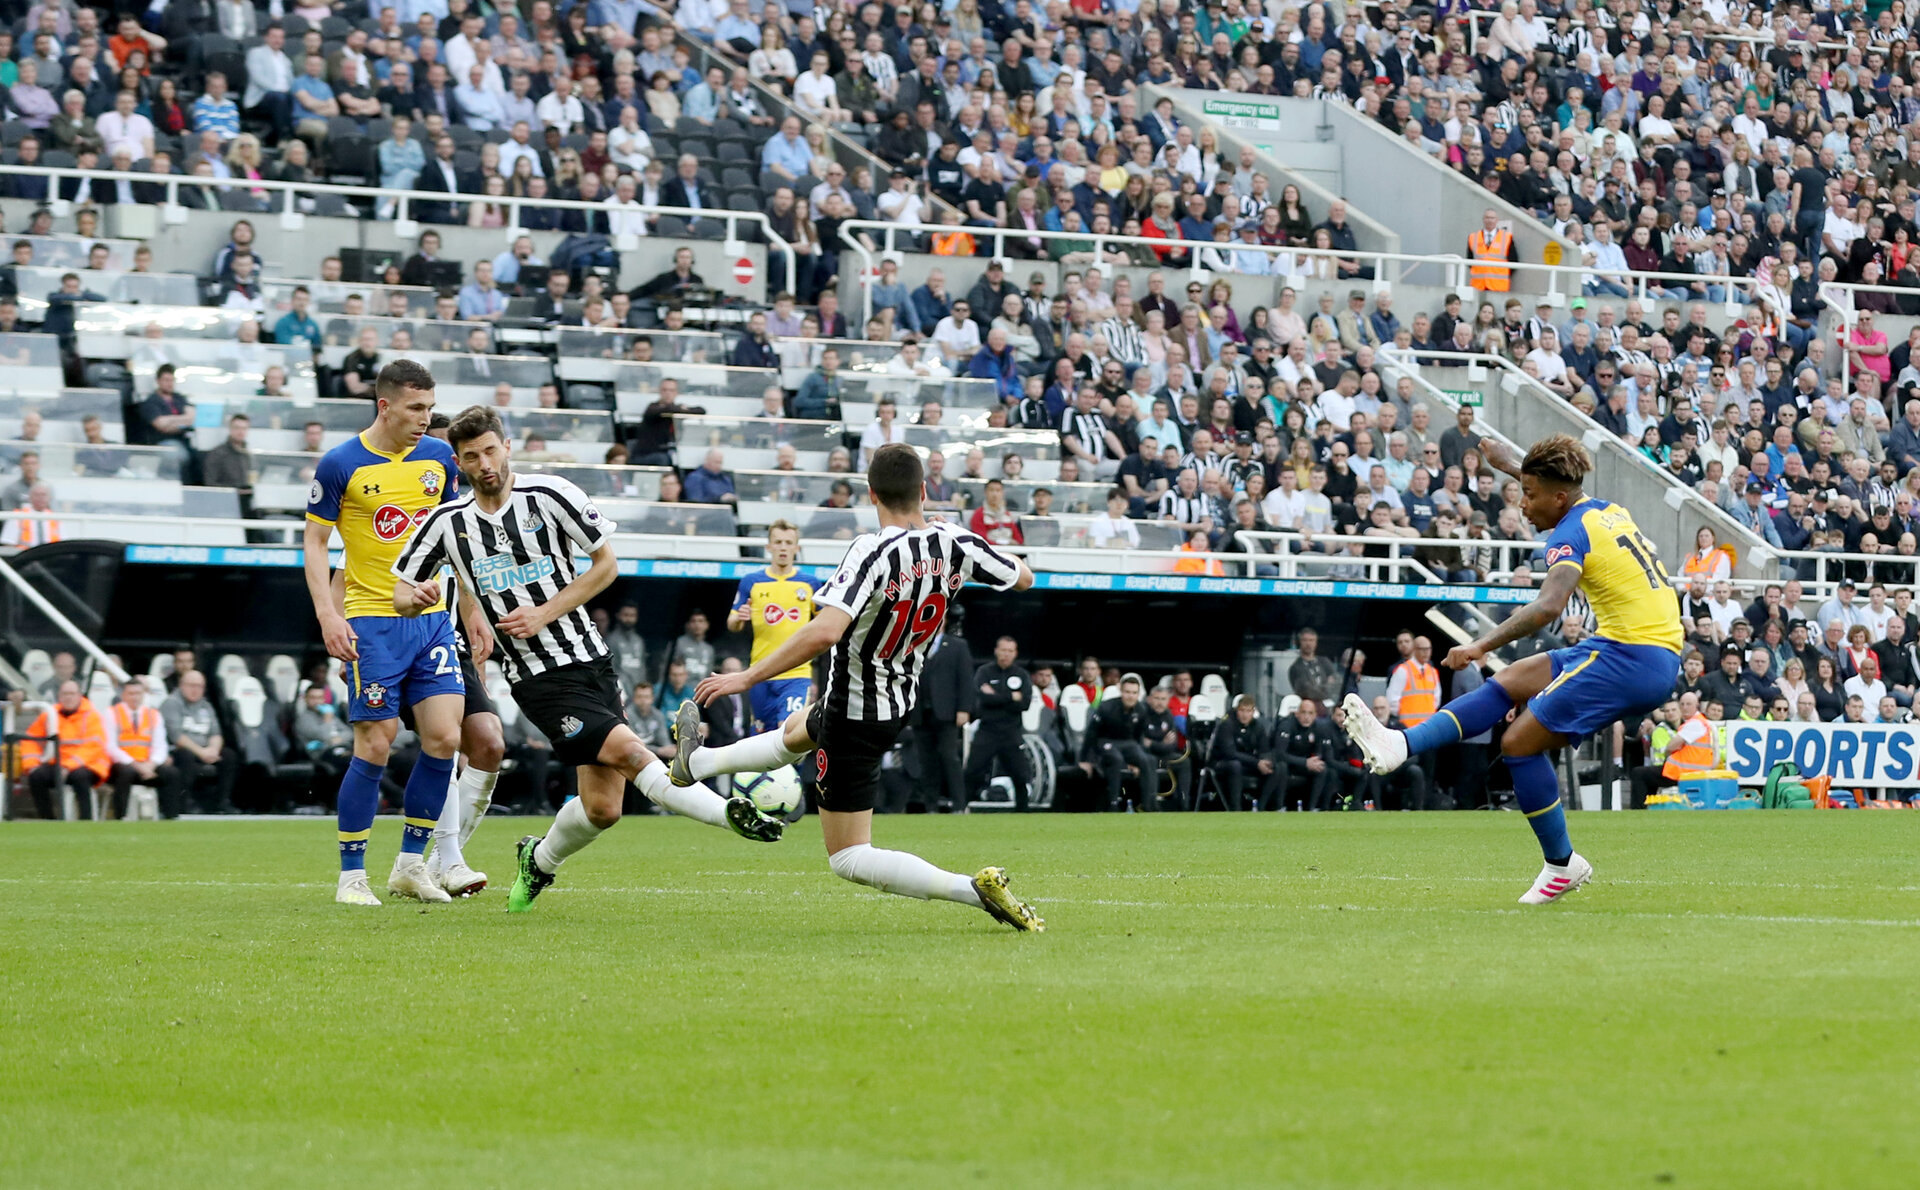 NEWCASTLE UPON TYNE, ENGLAND - APRIL 20: Mario Lemina of Southampton scores to make it 2-1 during the Premier League match between Newcastle United and Southampton FC at St. James Park on April 20, 2019 in Newcastle upon Tyne, United Kingdom. (Photo by Matt Watson/Southampton FC via Getty Images)